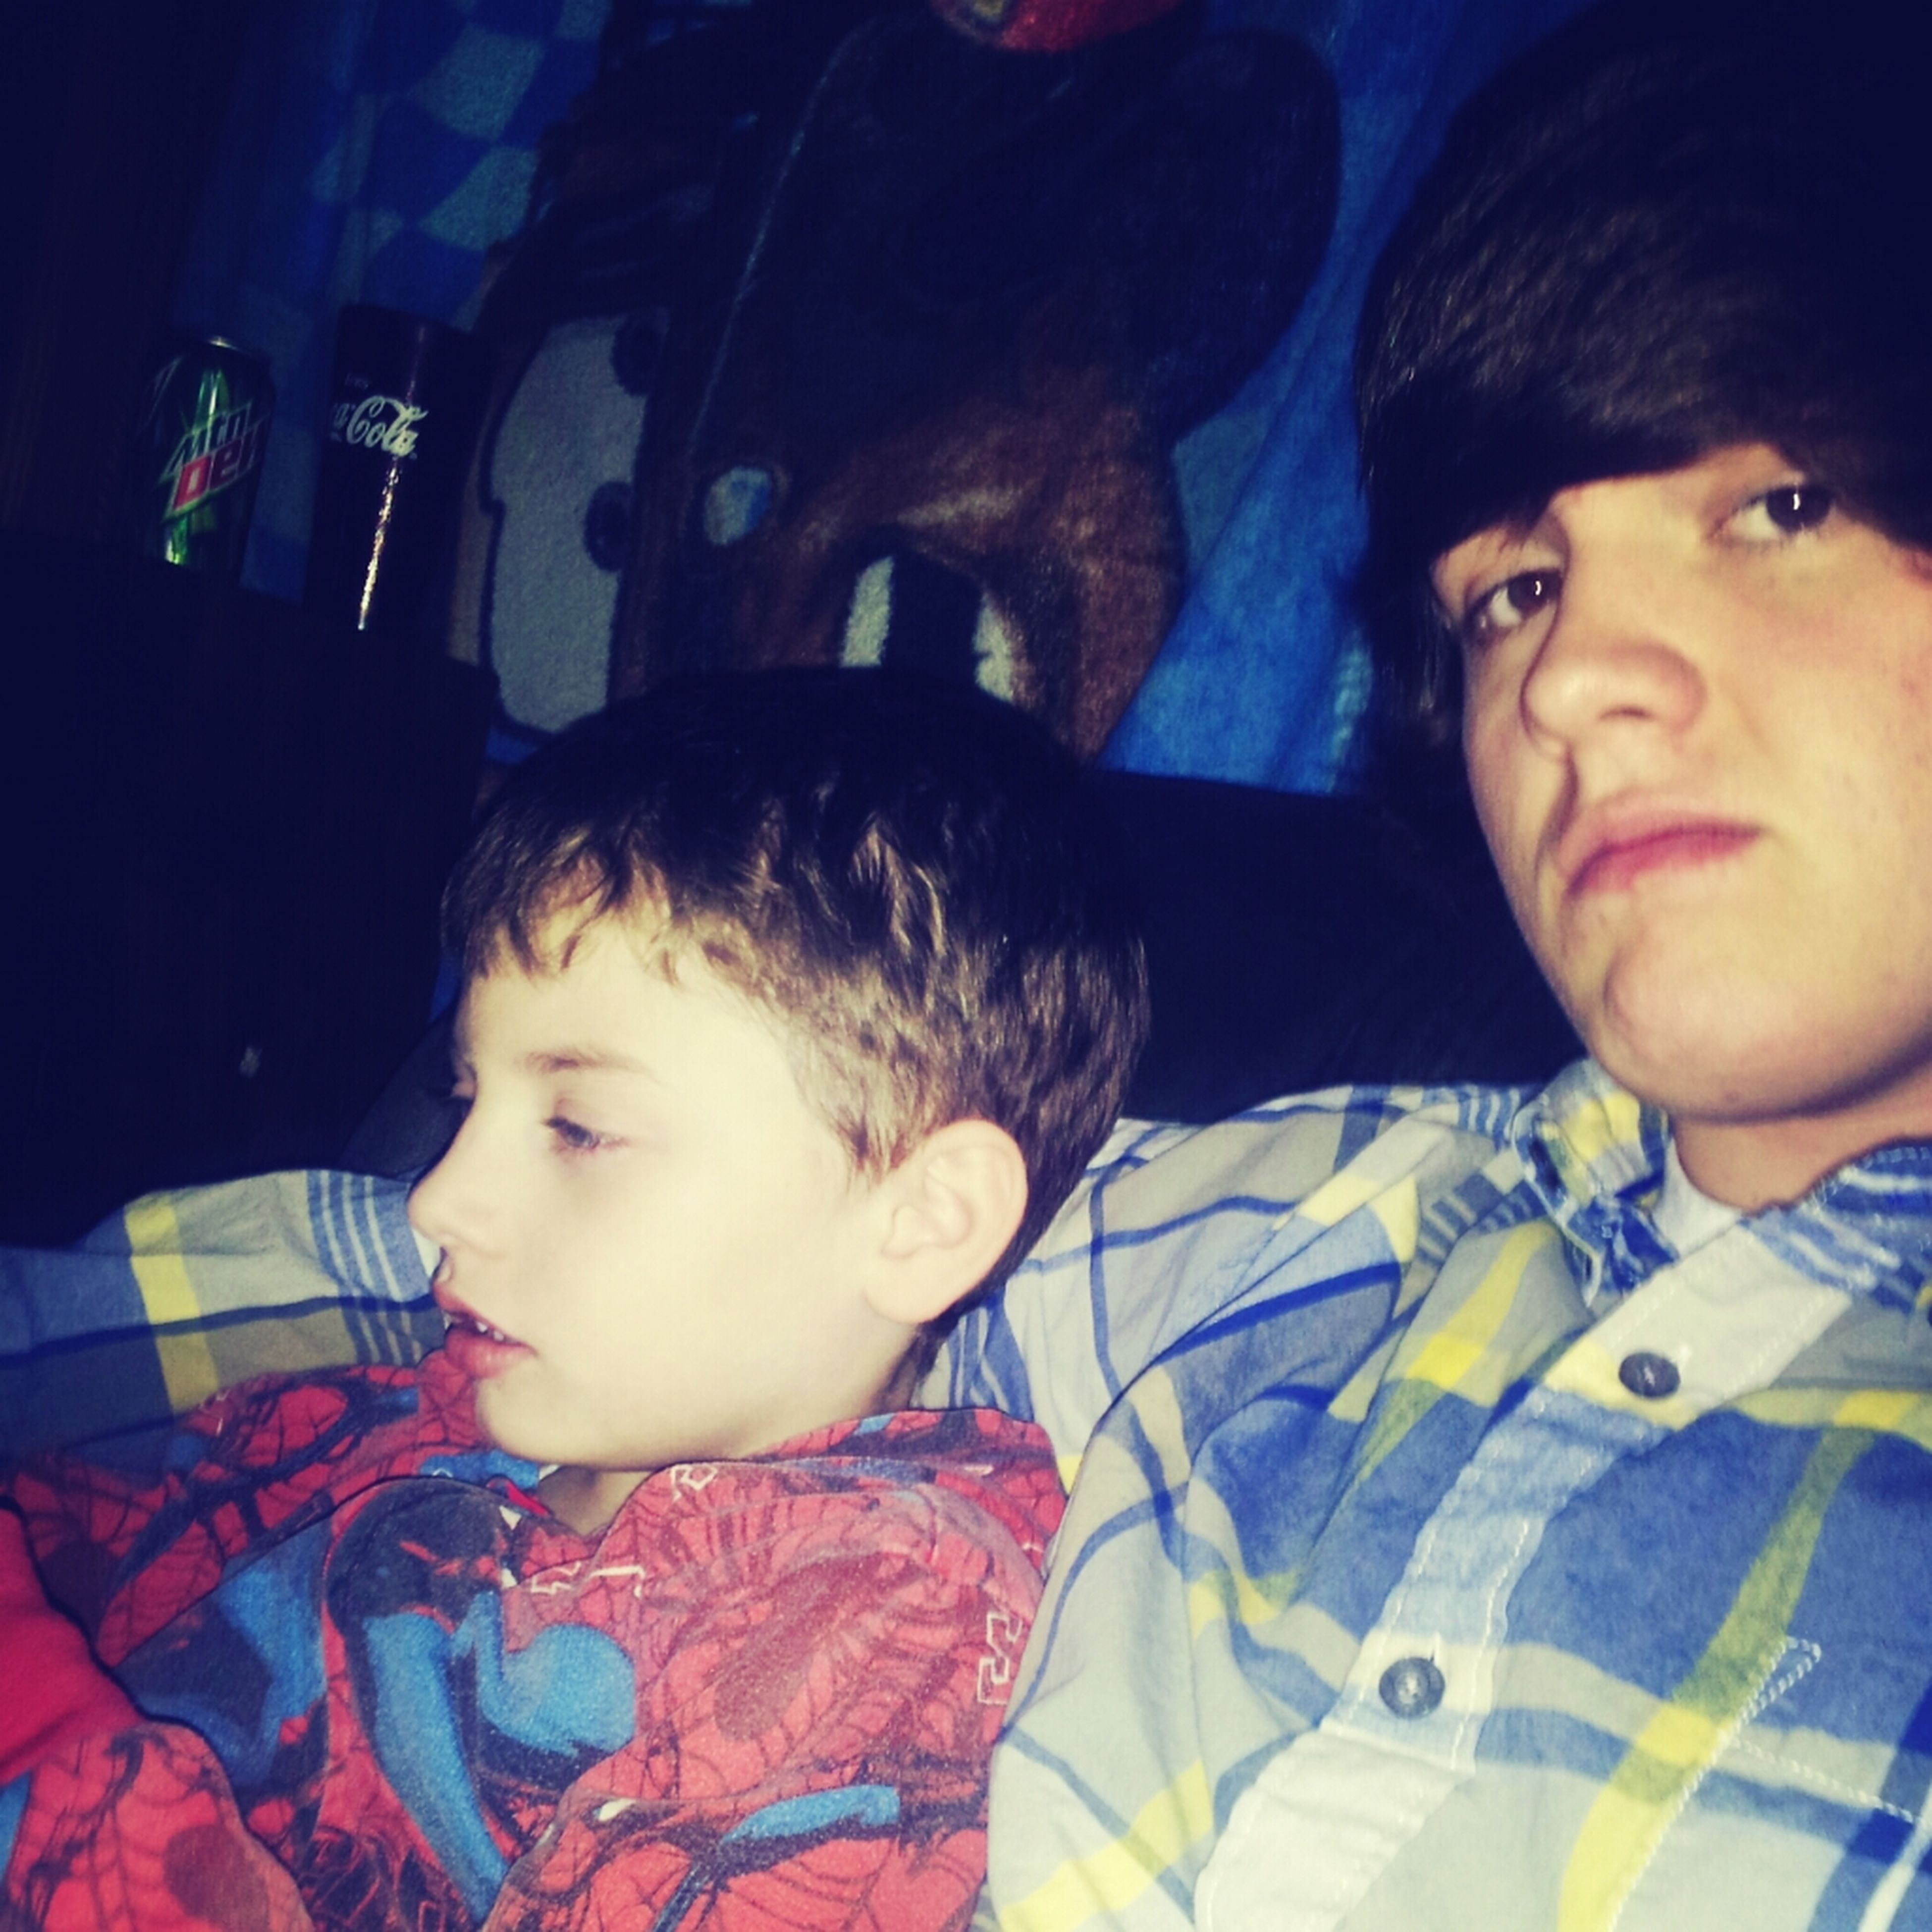 Hanging With My Little Bro